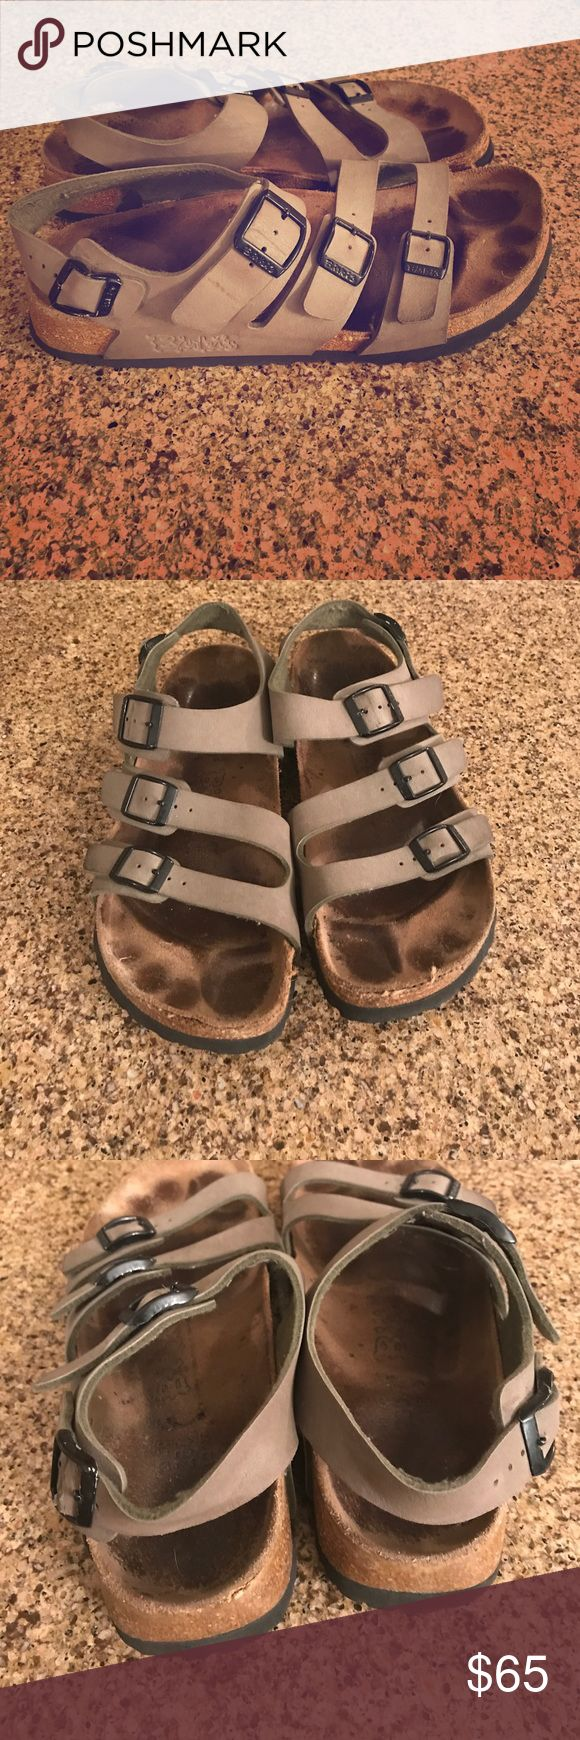 Birki's size 9 Birki's by Birkenstock sandal with heel strap. Ladies size 9 Men size 7. Good used condition. See all photos. Some slight lifting in the toe area. Birkenstock Shoes Sandals